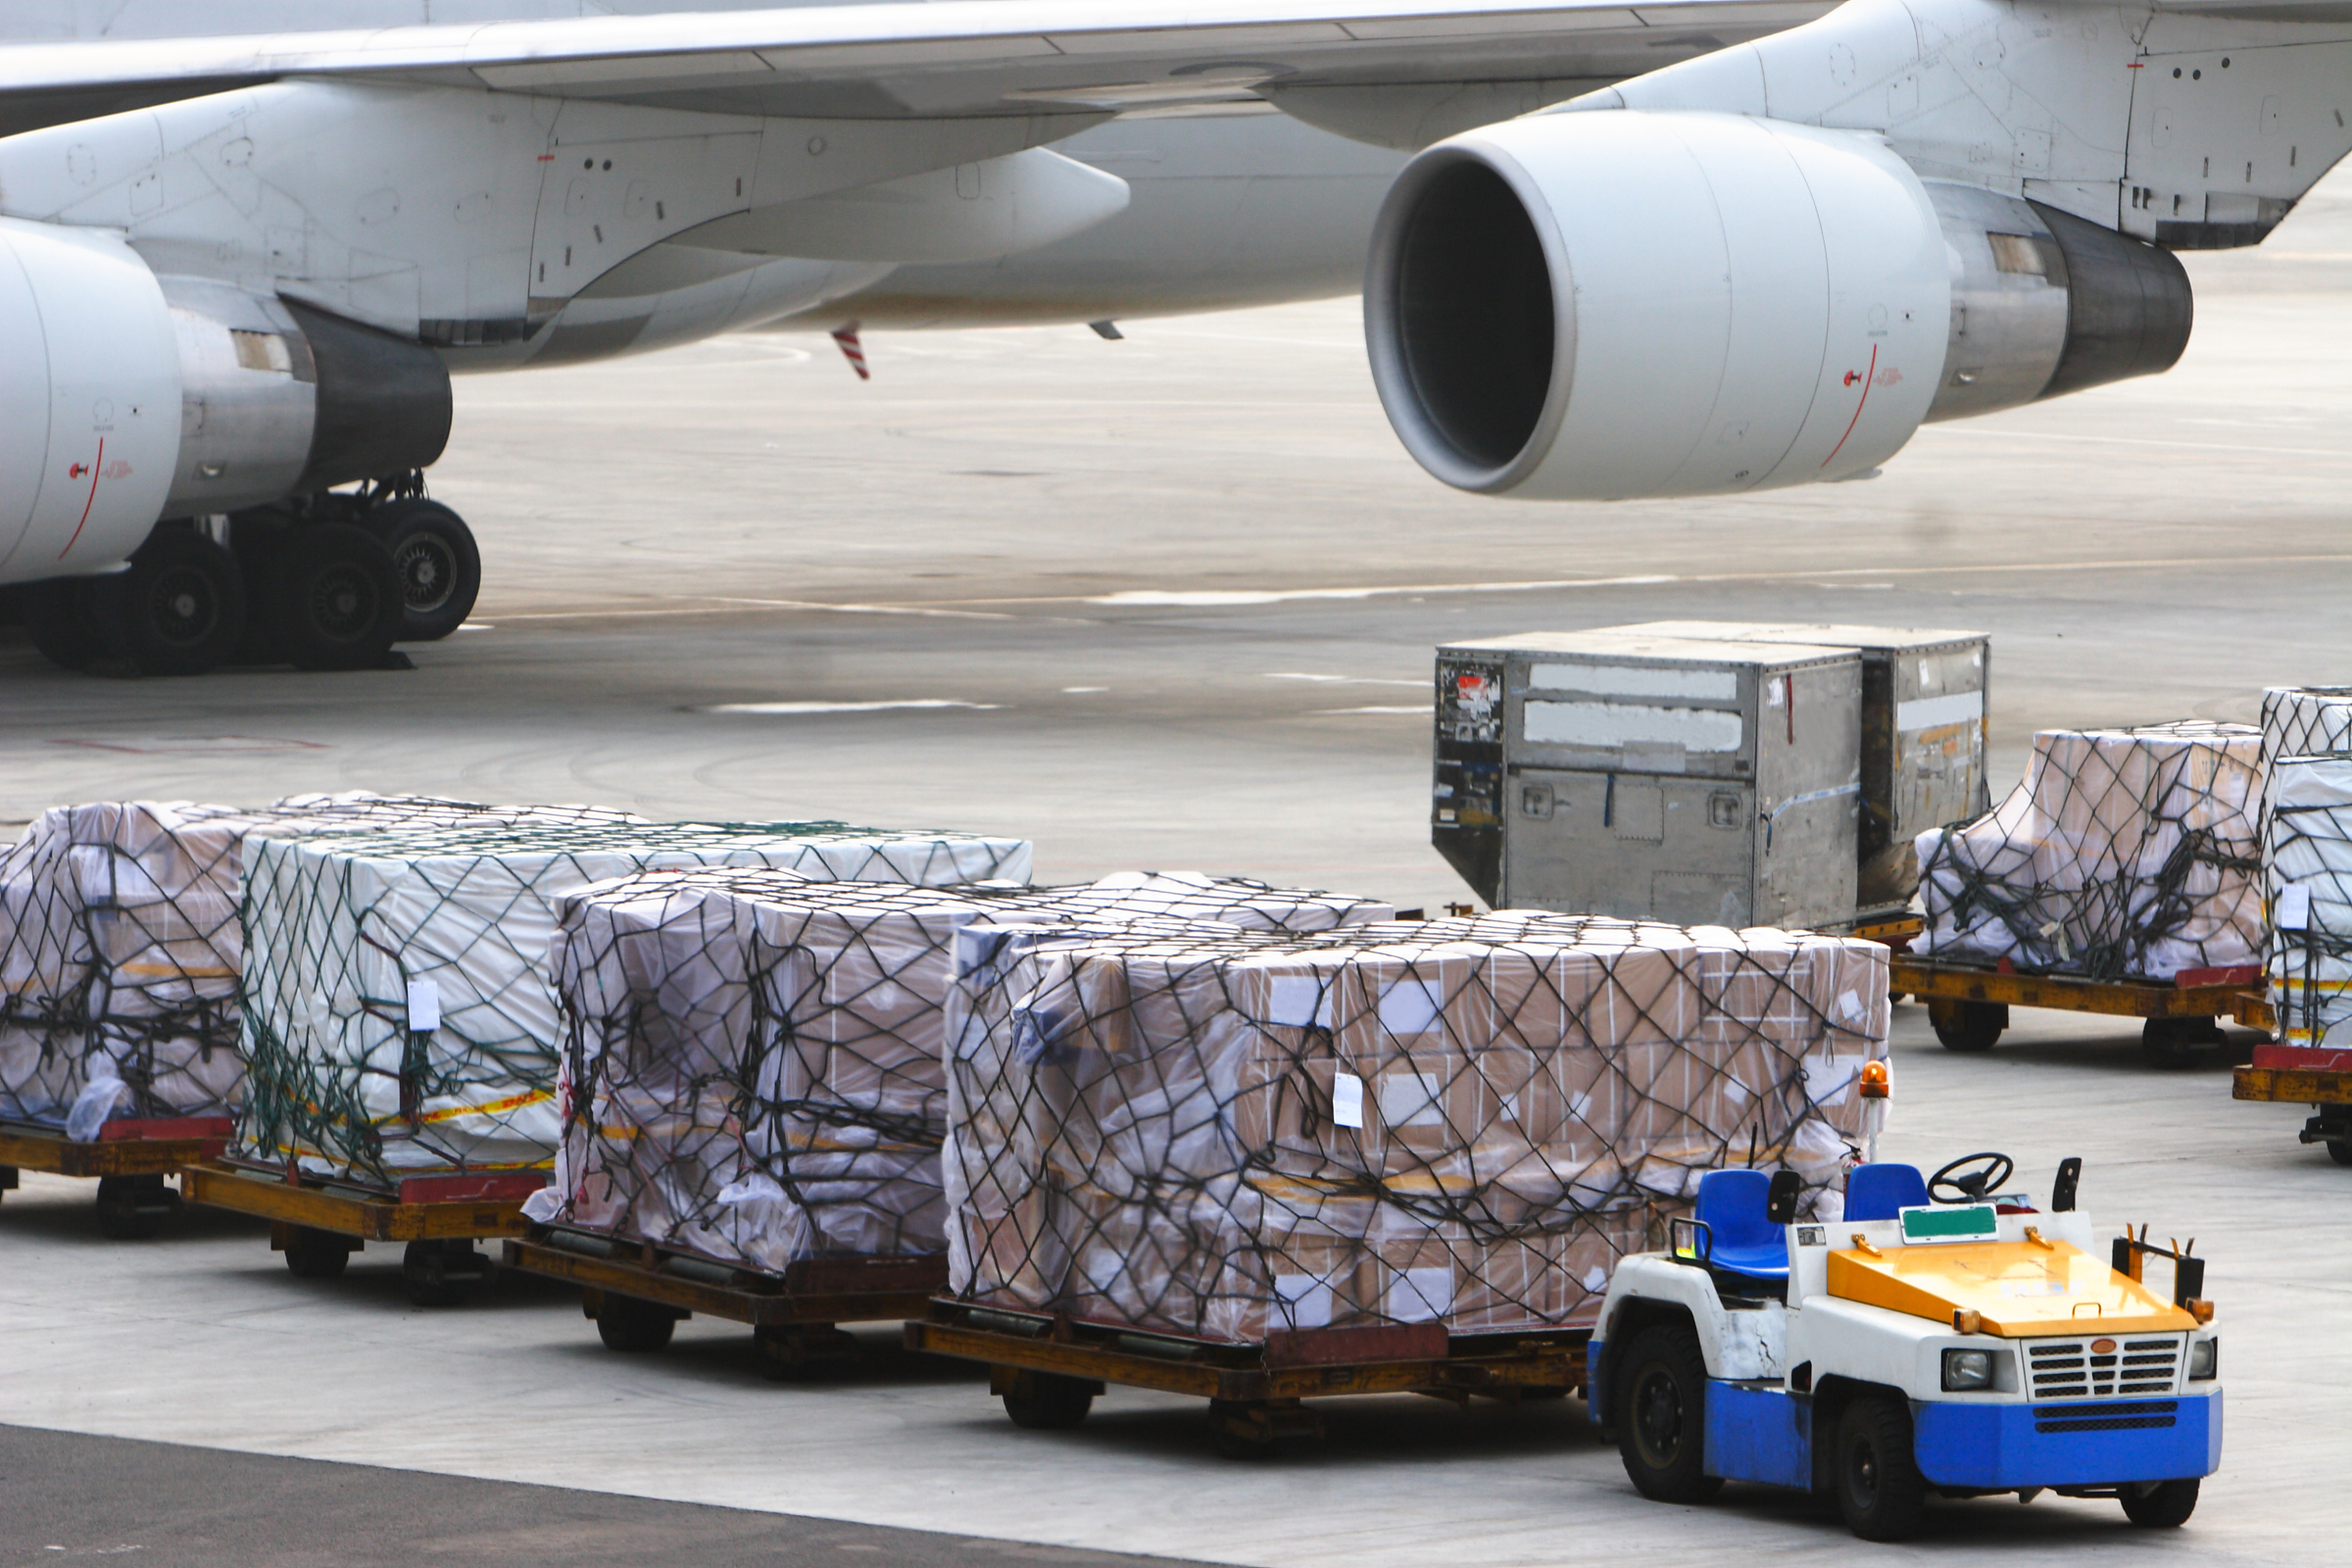 Network Airline Service Wins Gsa Contracts For Air Malta Cargo And